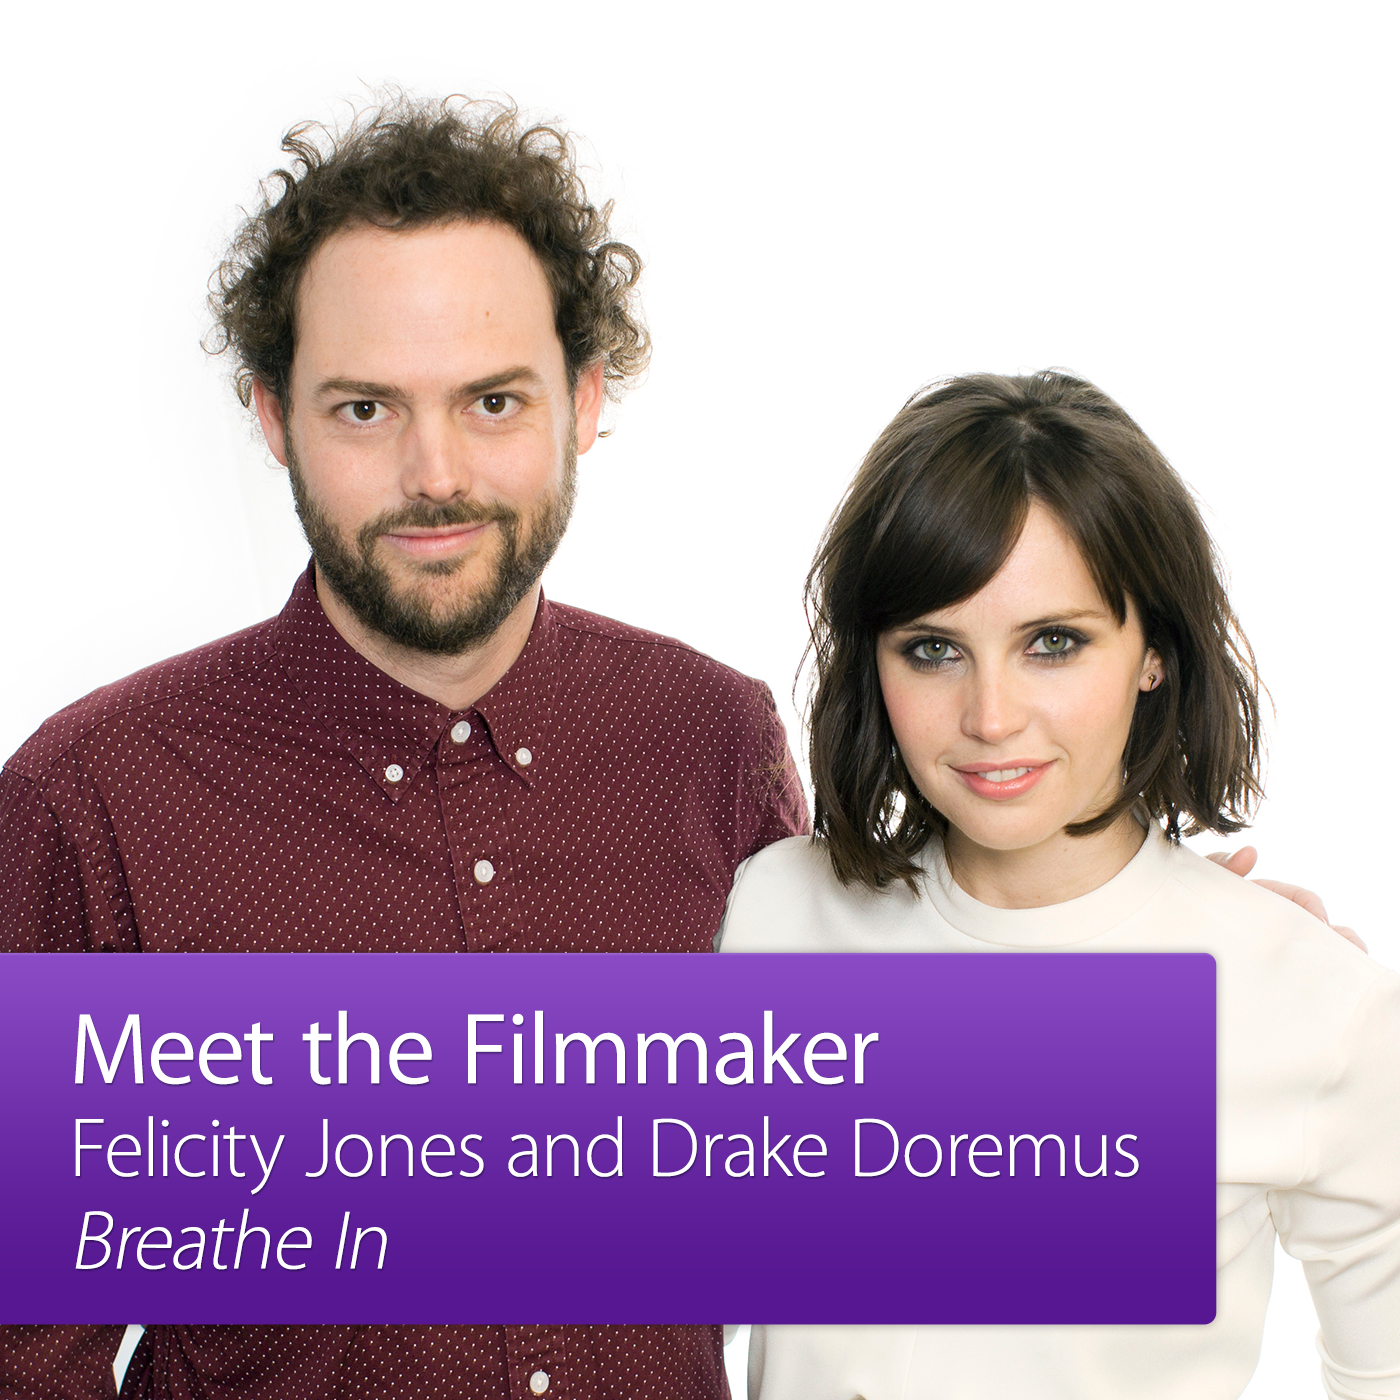 Felicity Jones and Drake Doremus: Meet the Filmmaker